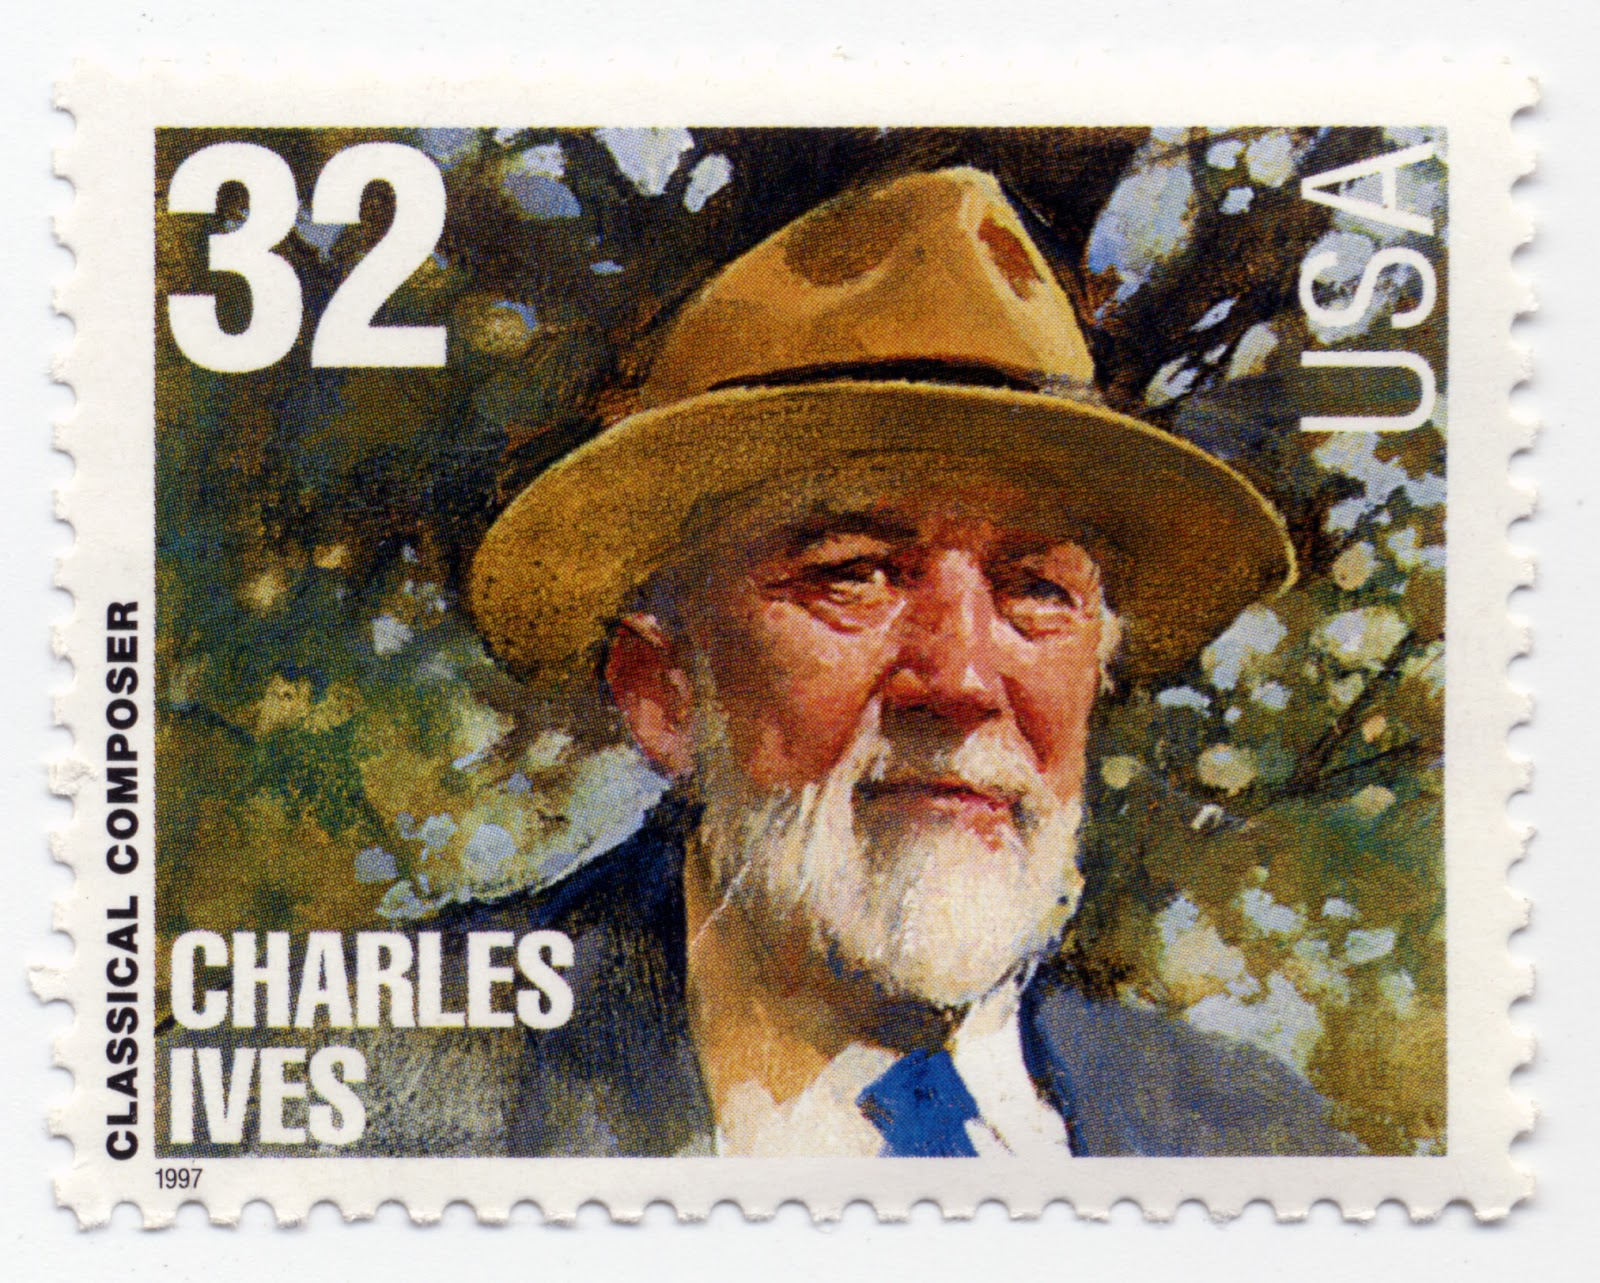 """charles ives essays The unanswered question by charles ives, charlie rutlage by charles ives, """"bess, you ais my woman now essays faqs search for: search essay info: 638 words."""